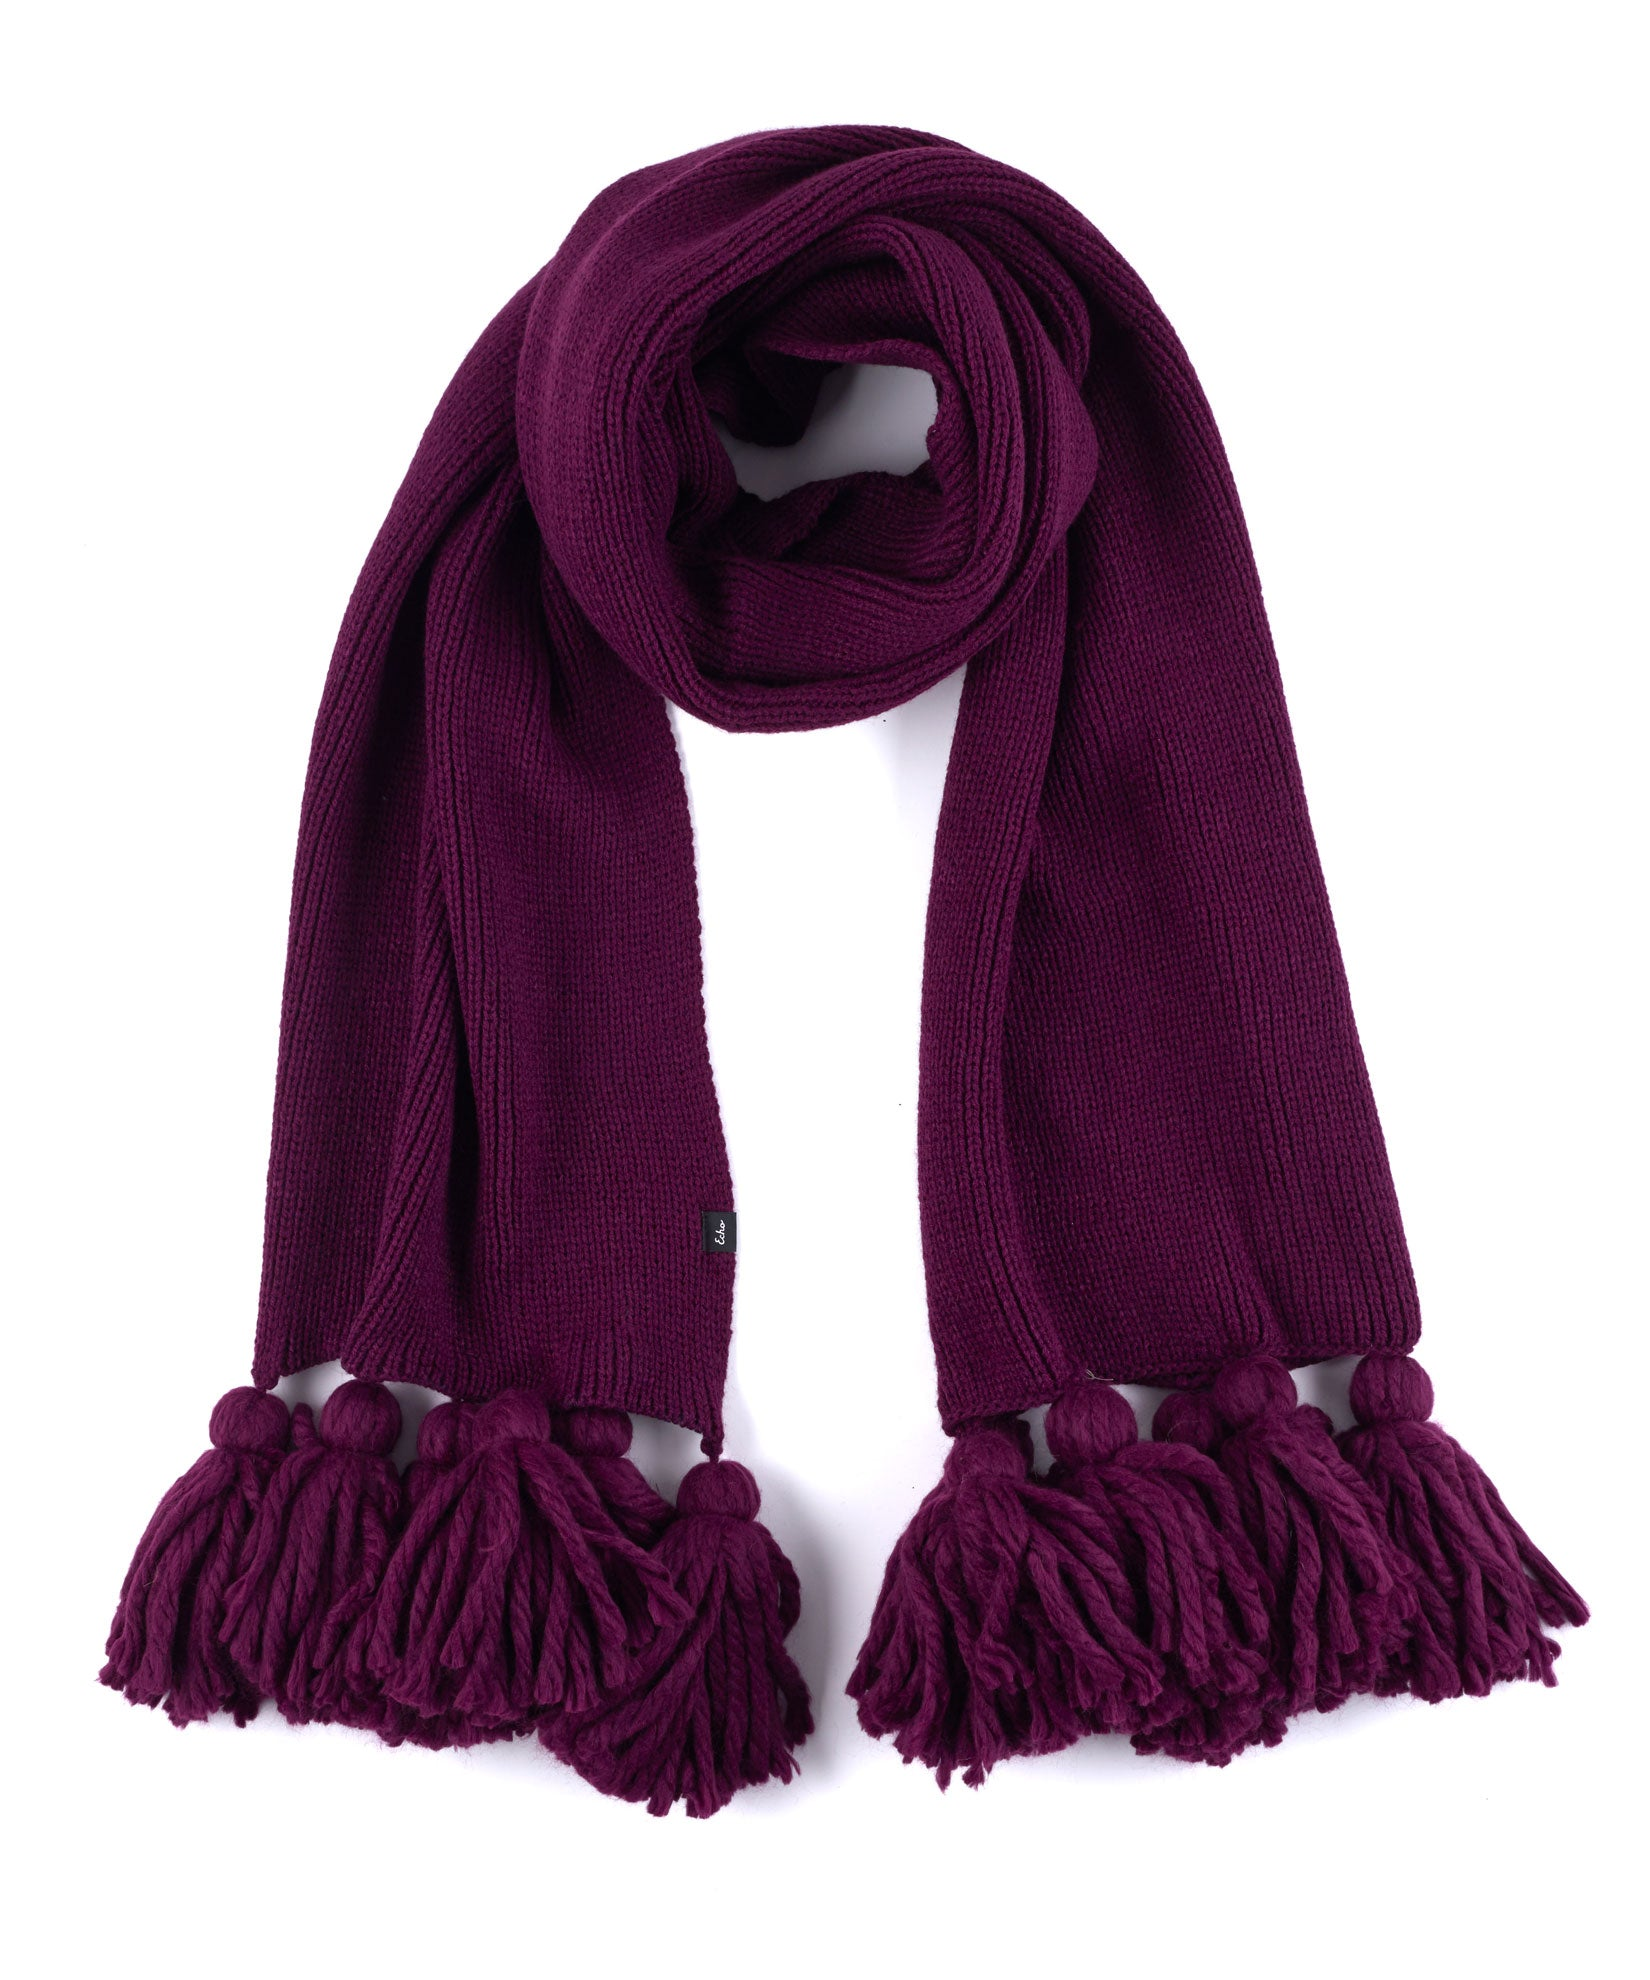 Pickled Beet - Maxi Tassel Muffler